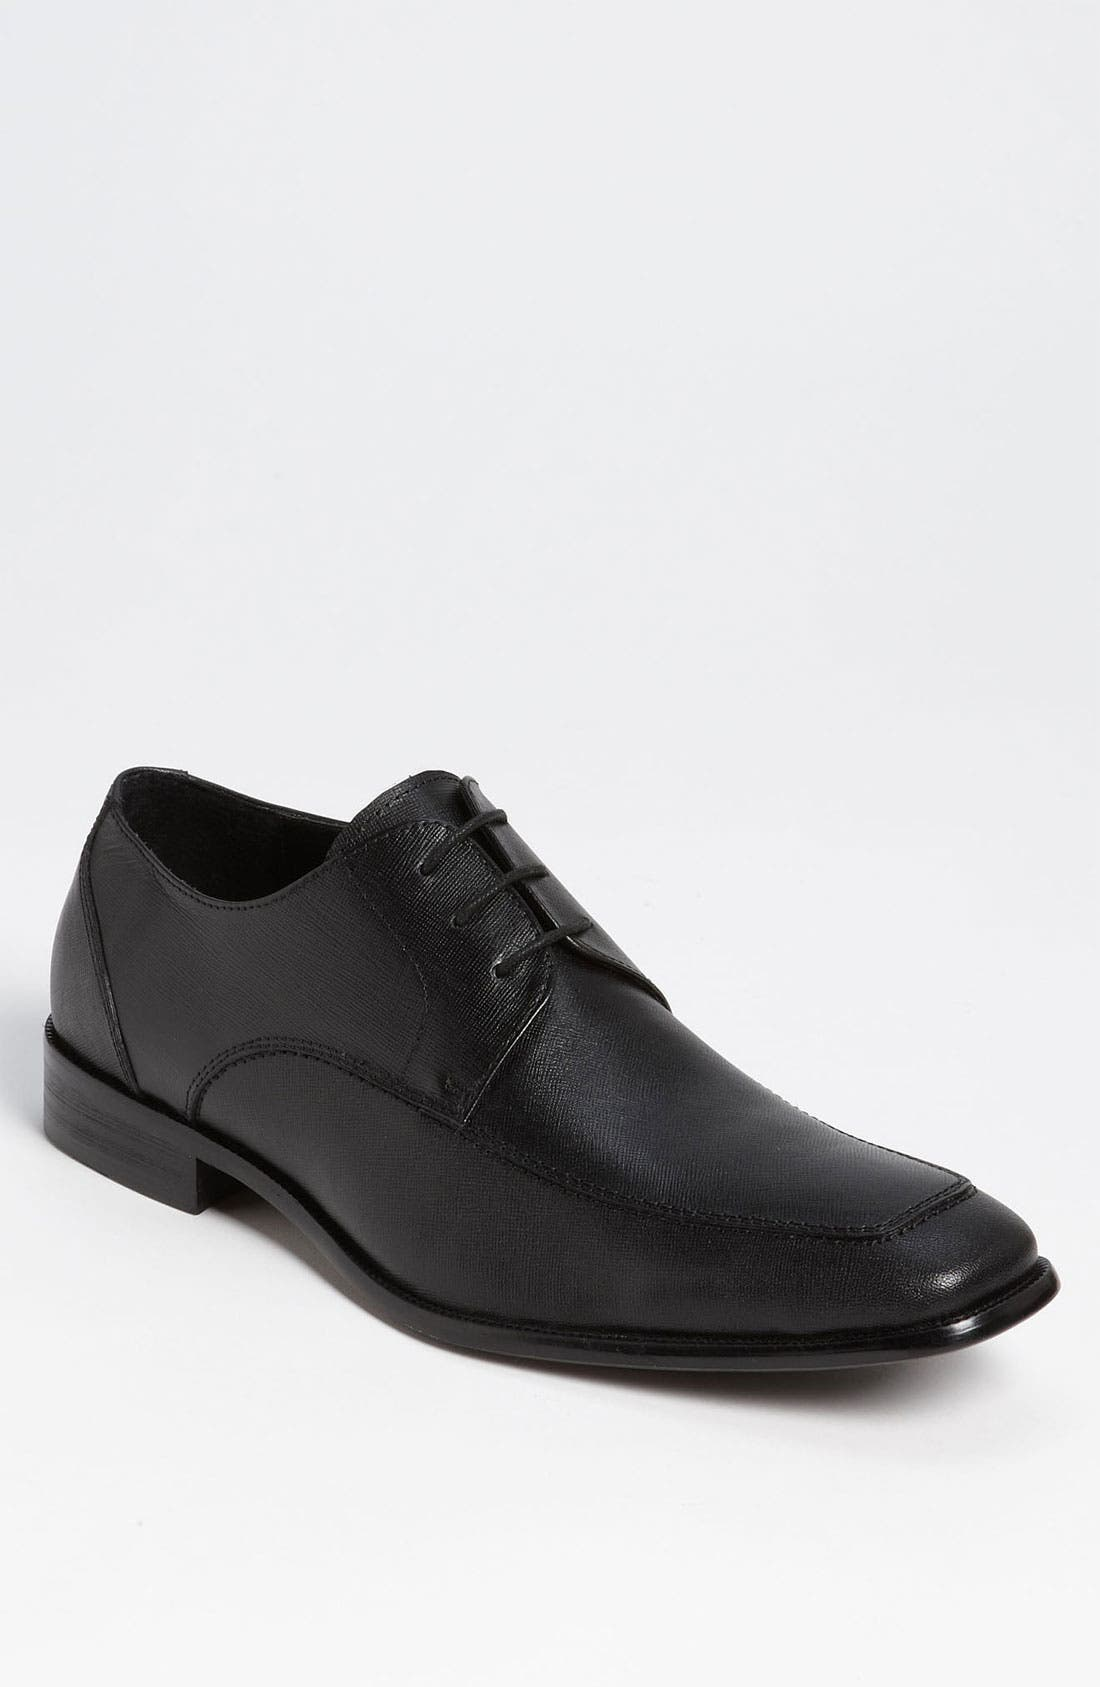 Alternate Image 1 Selected - ALDO 'Blasi' Apron Toe Derby